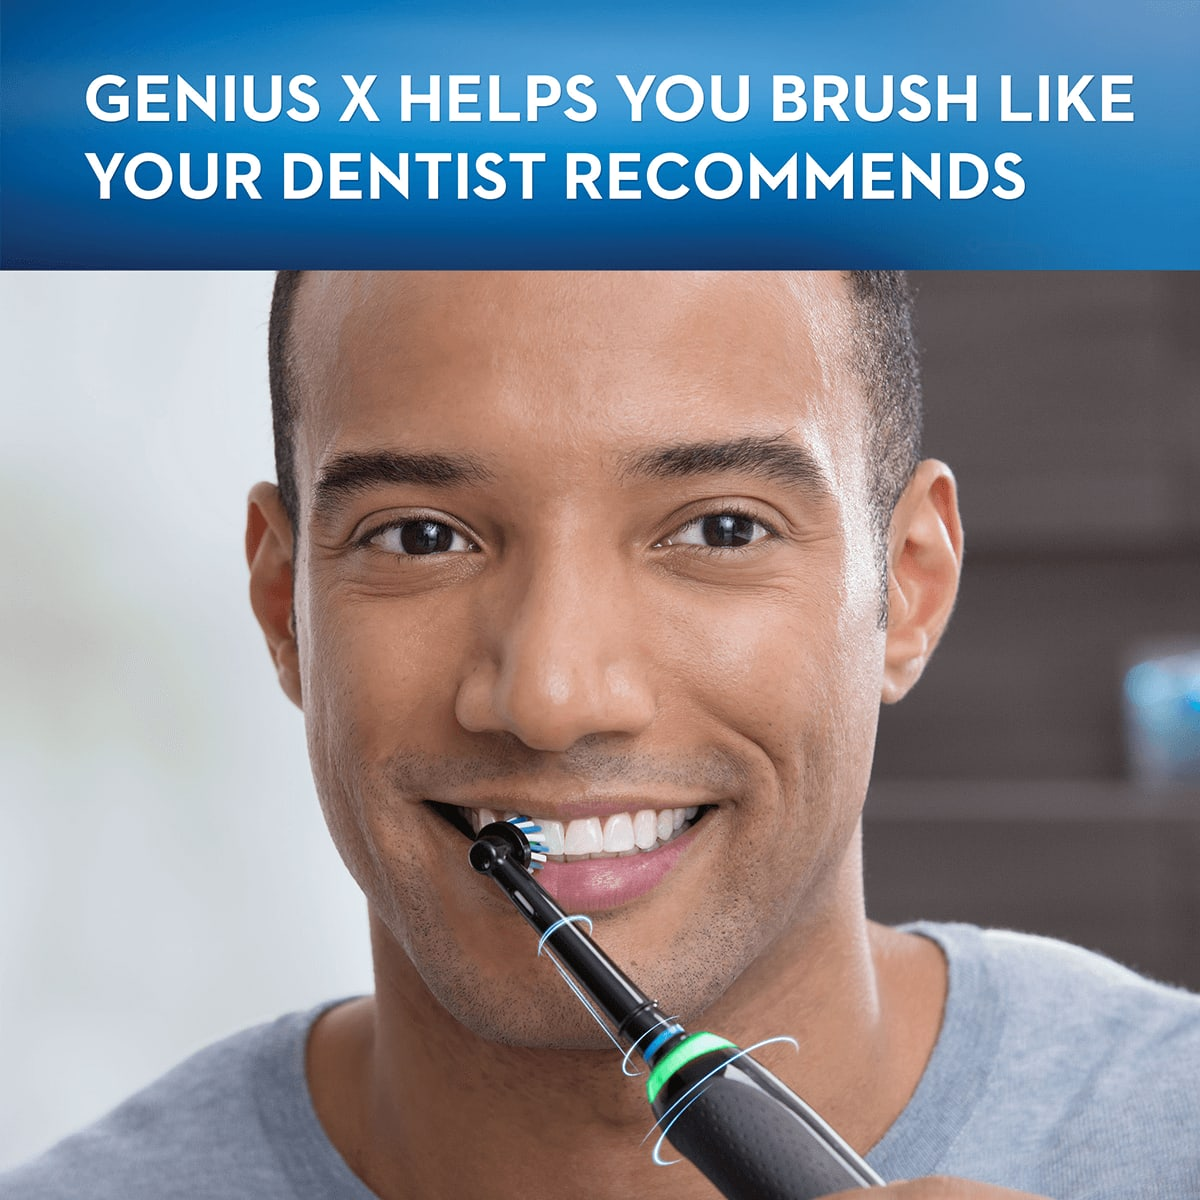 brush like your dentist recommends